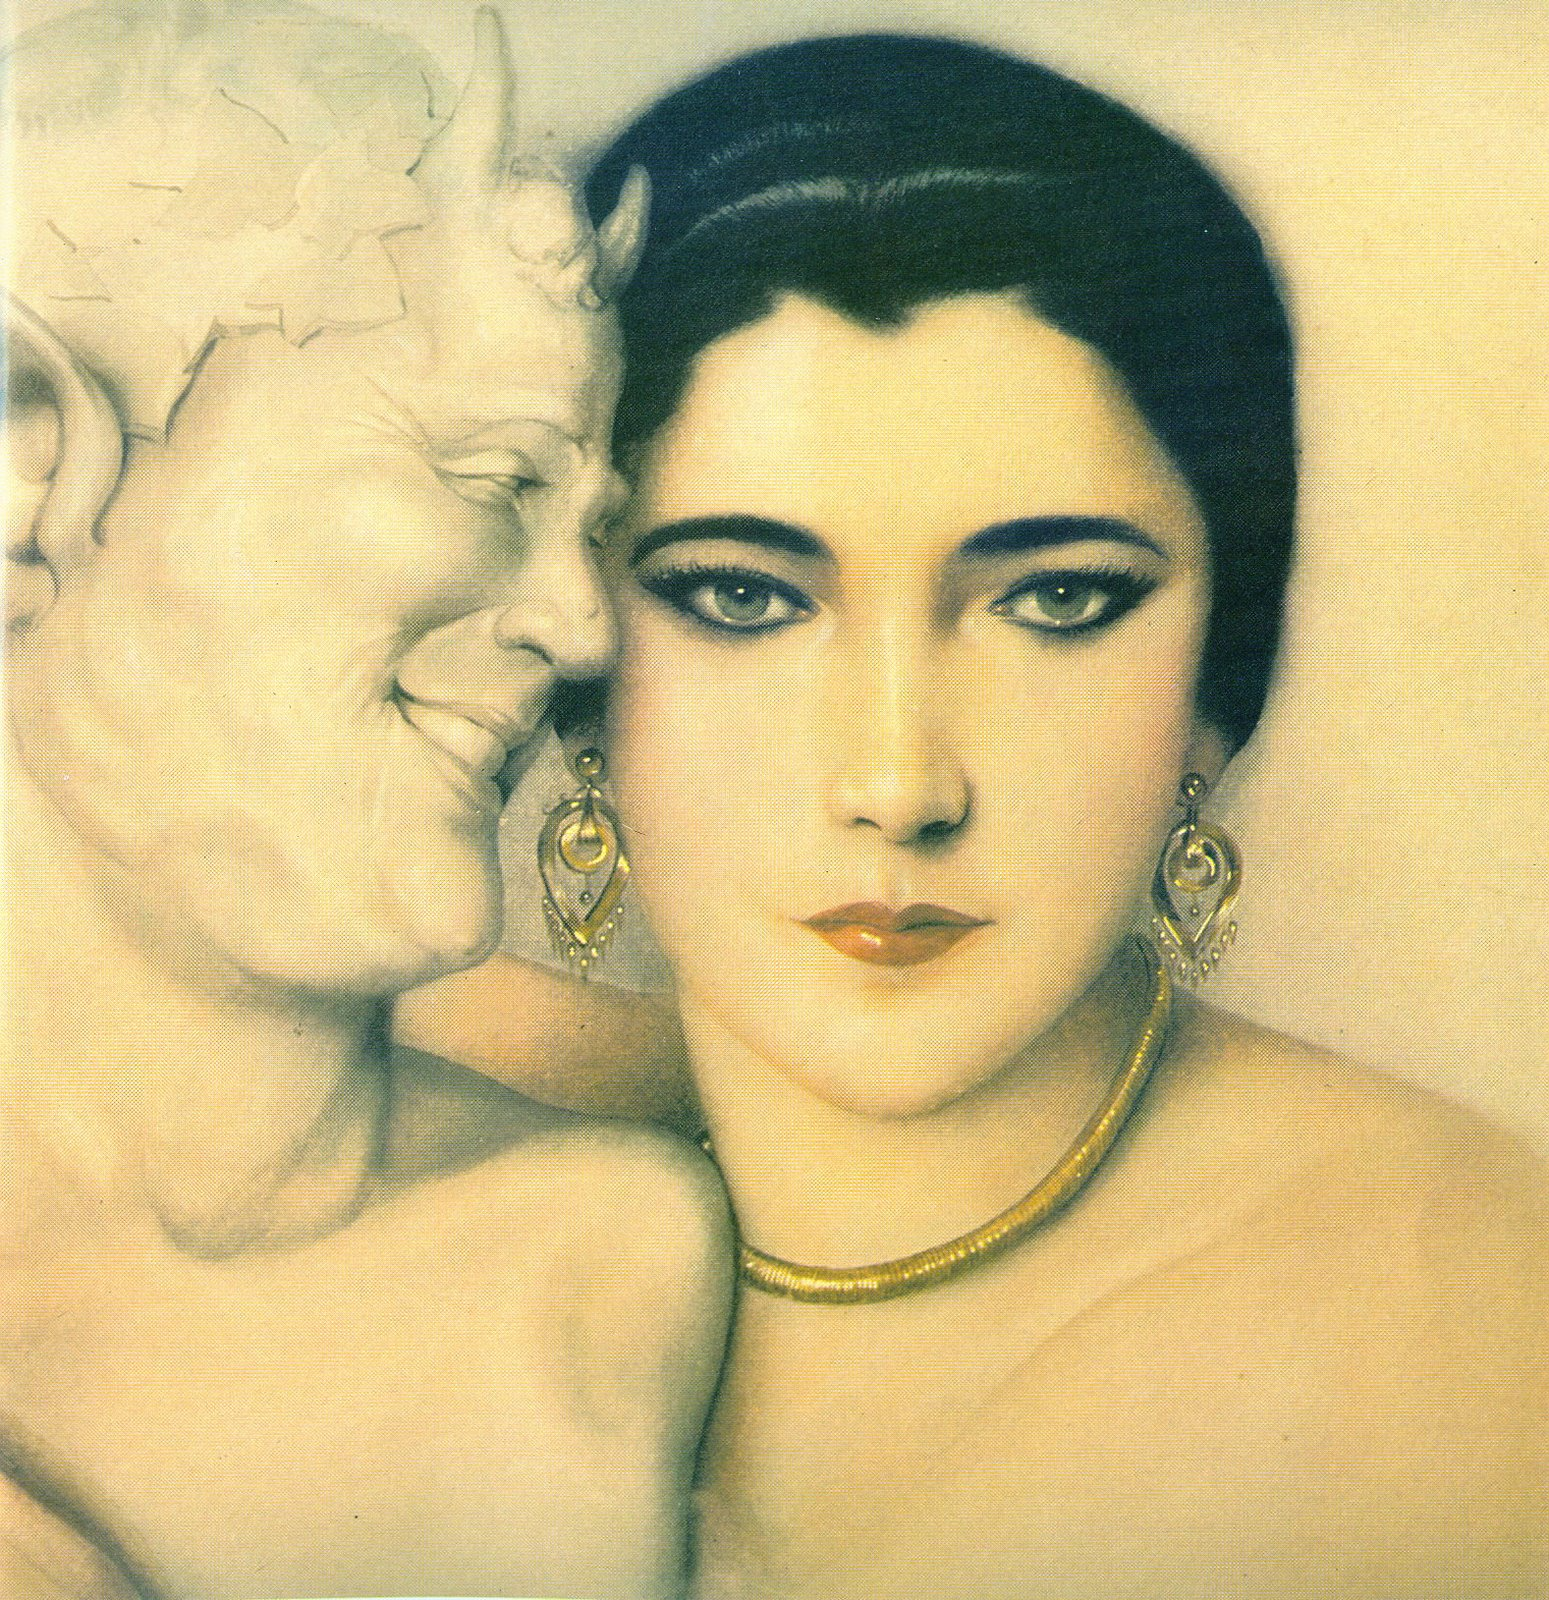 """NITA NALDI"", : ALBERTO VARGAS, 1923!"